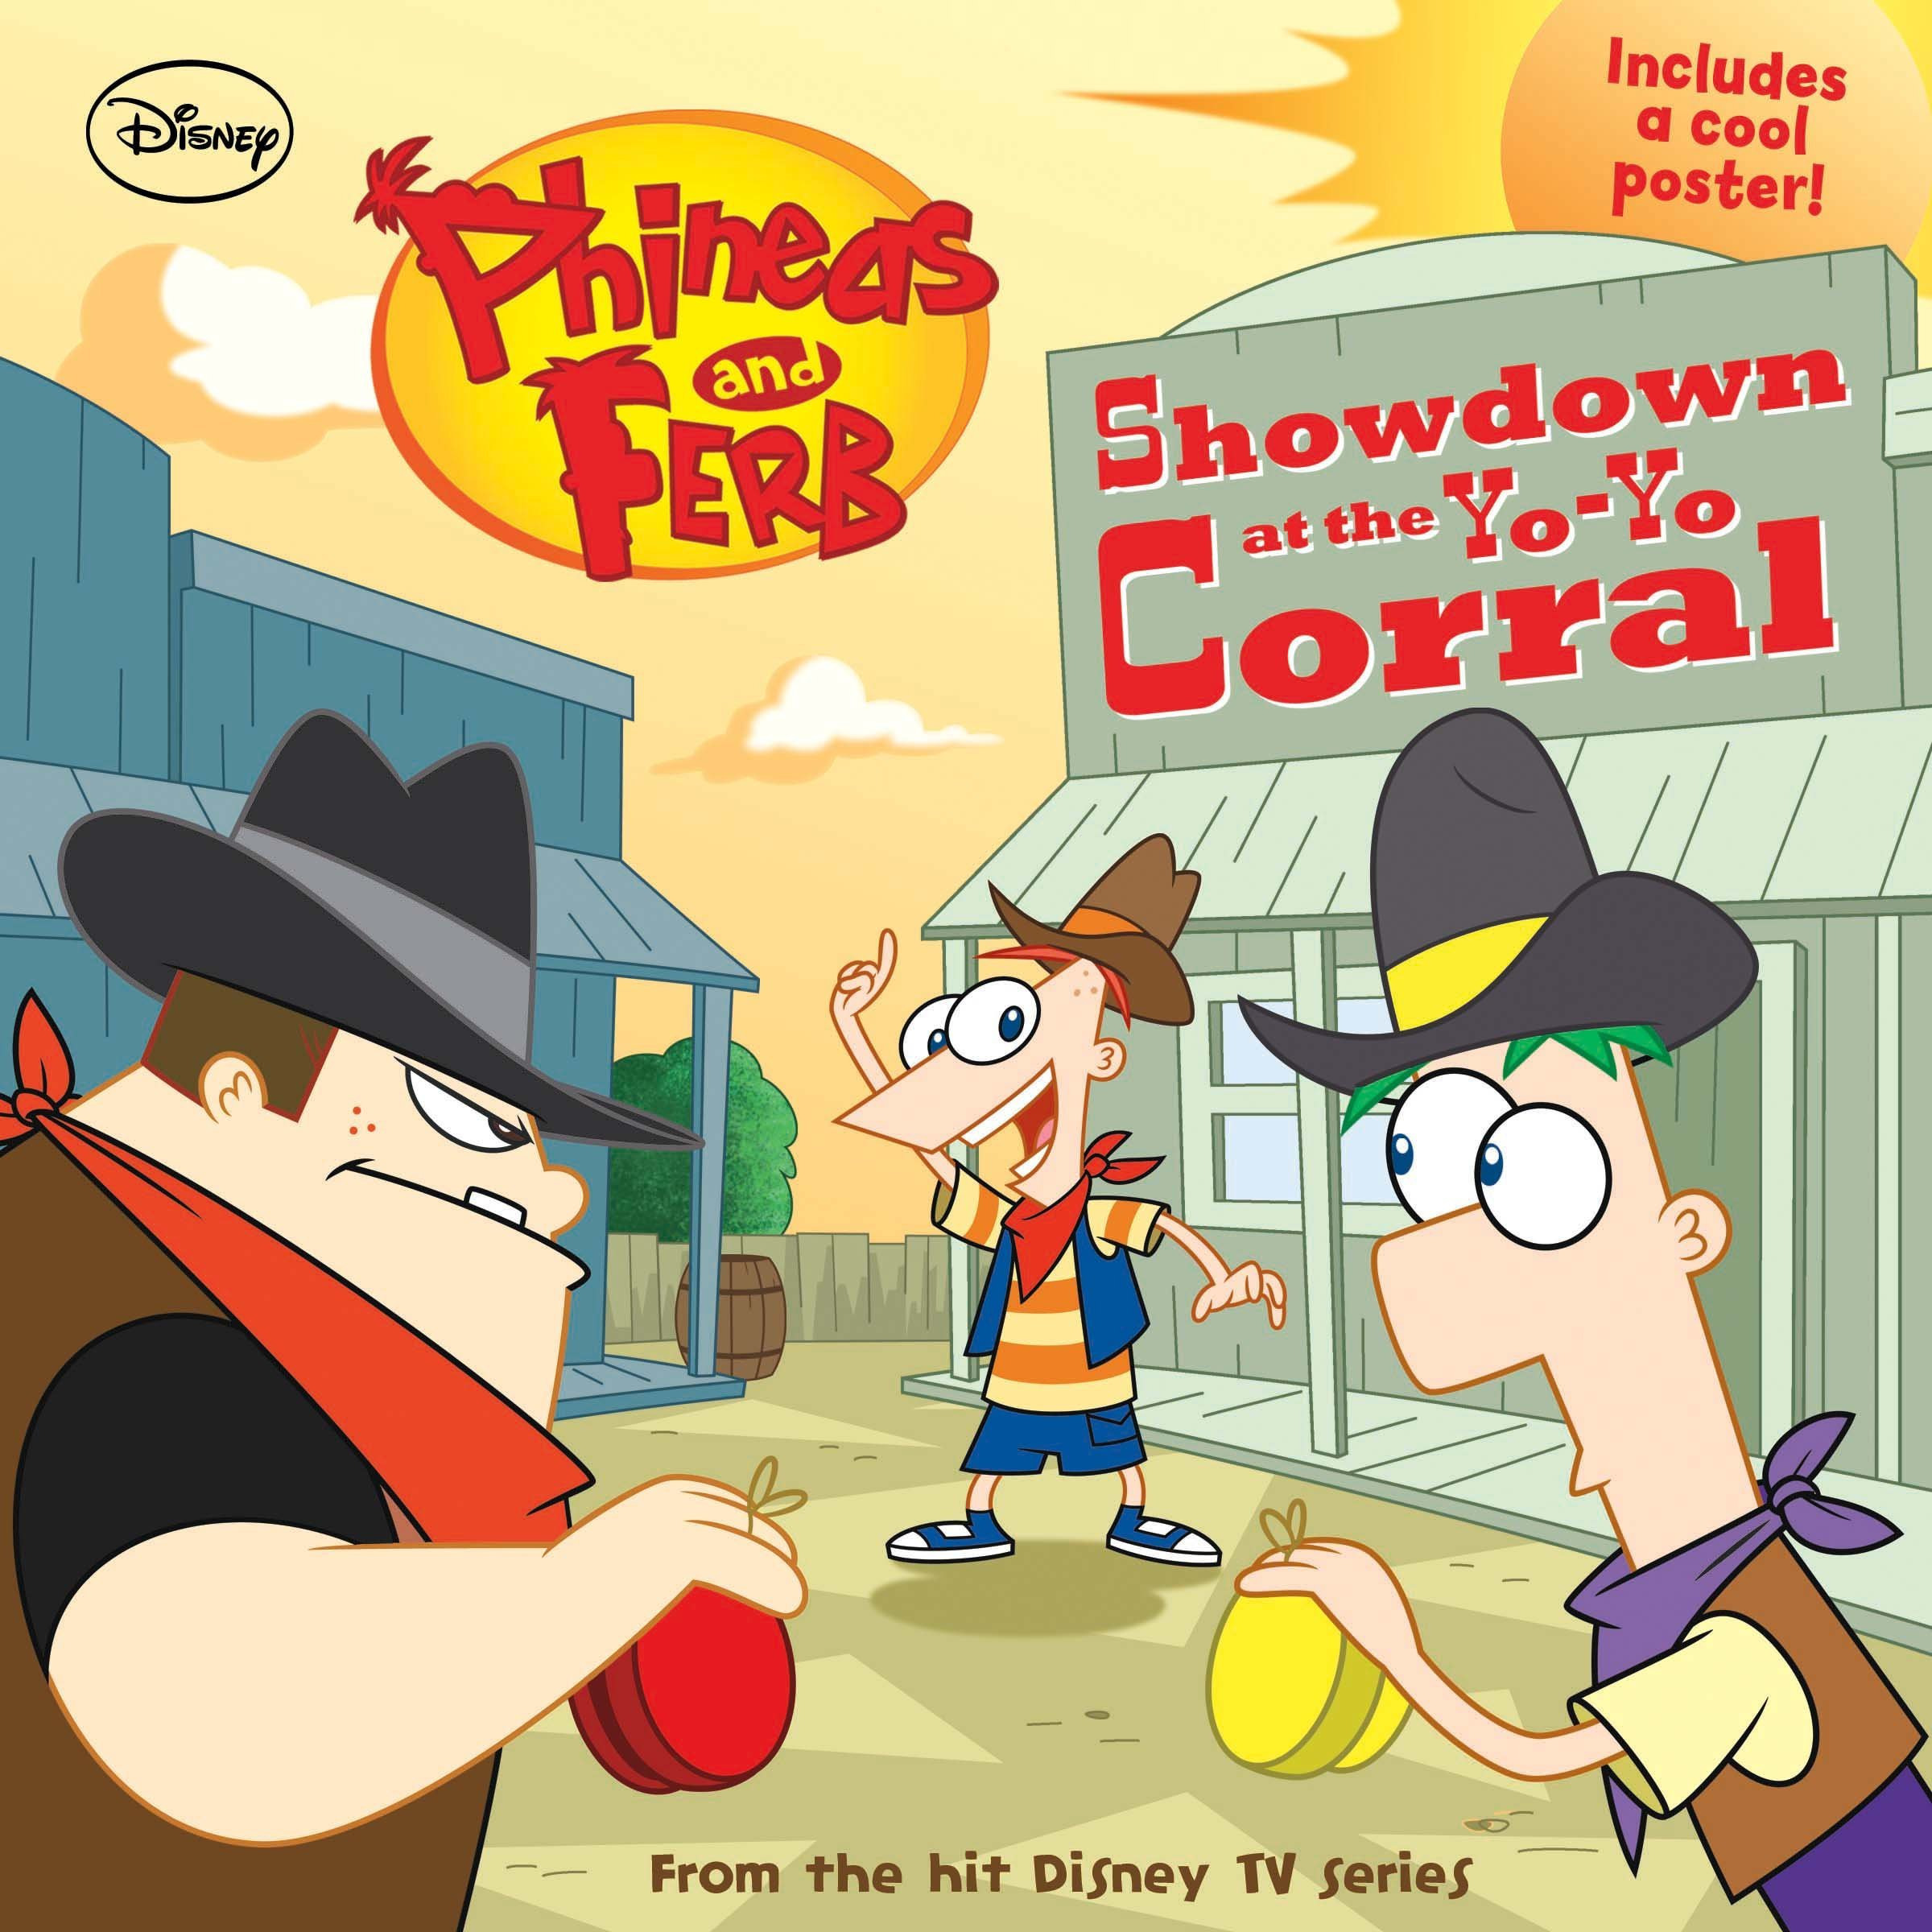 Showdown at the Yo-Yo Corral